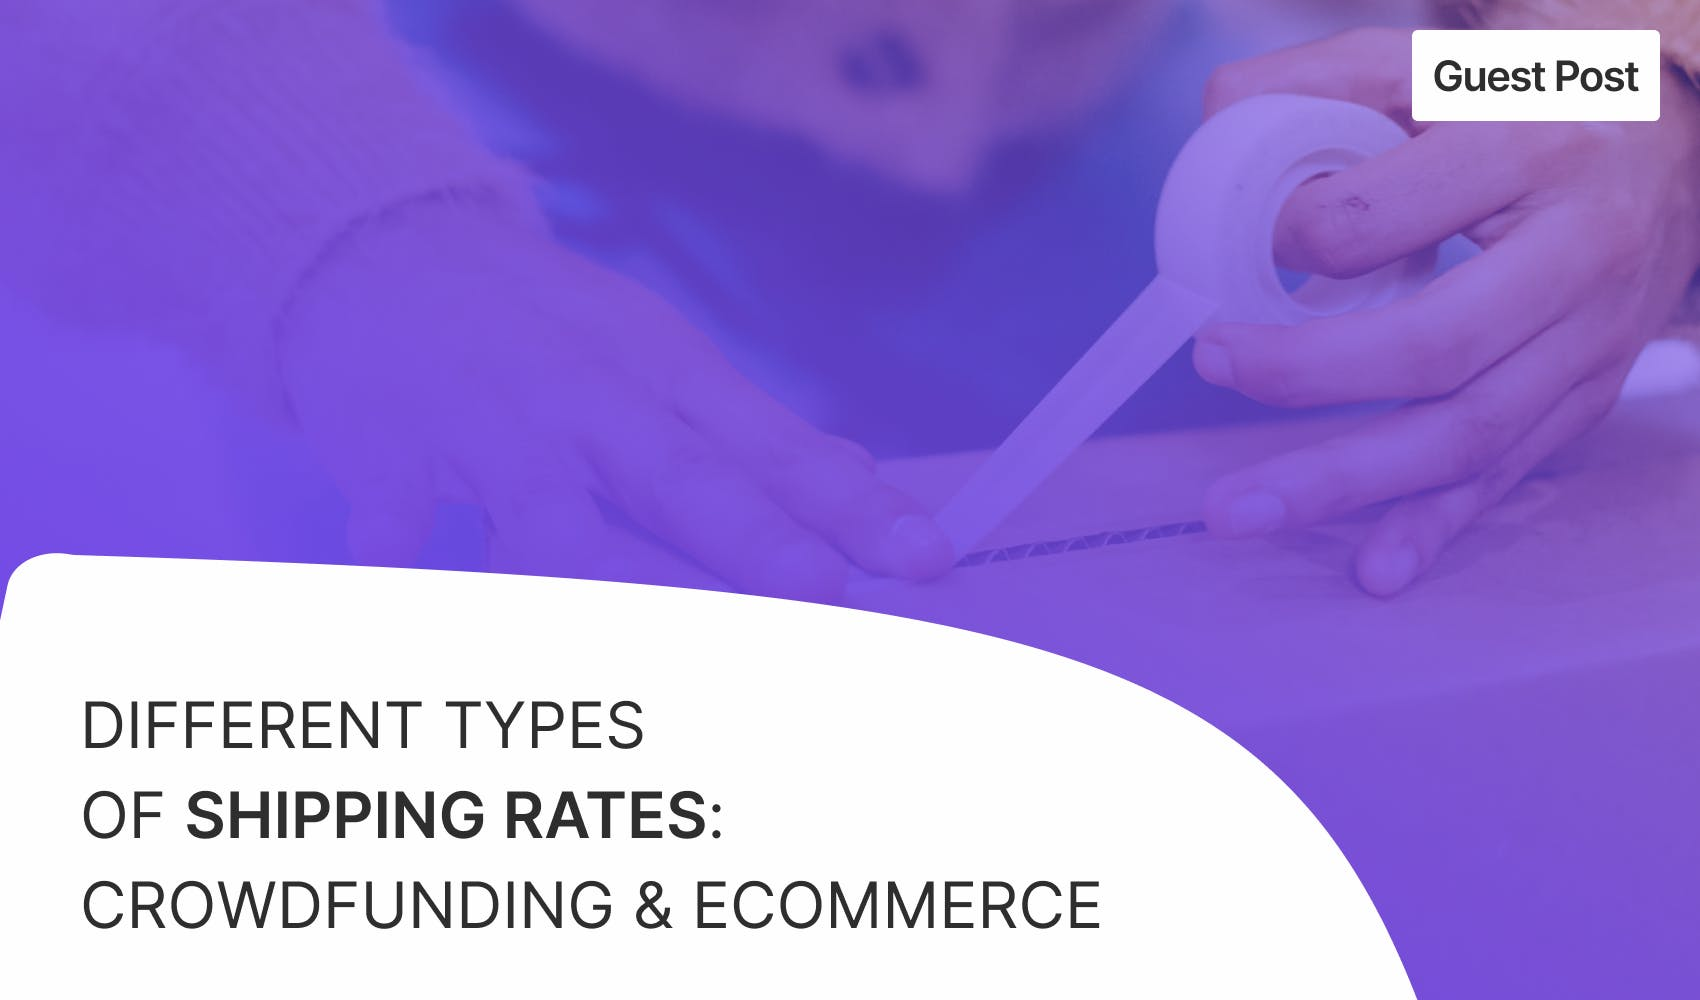 Shipping rates for crowdfunding & ecommerce